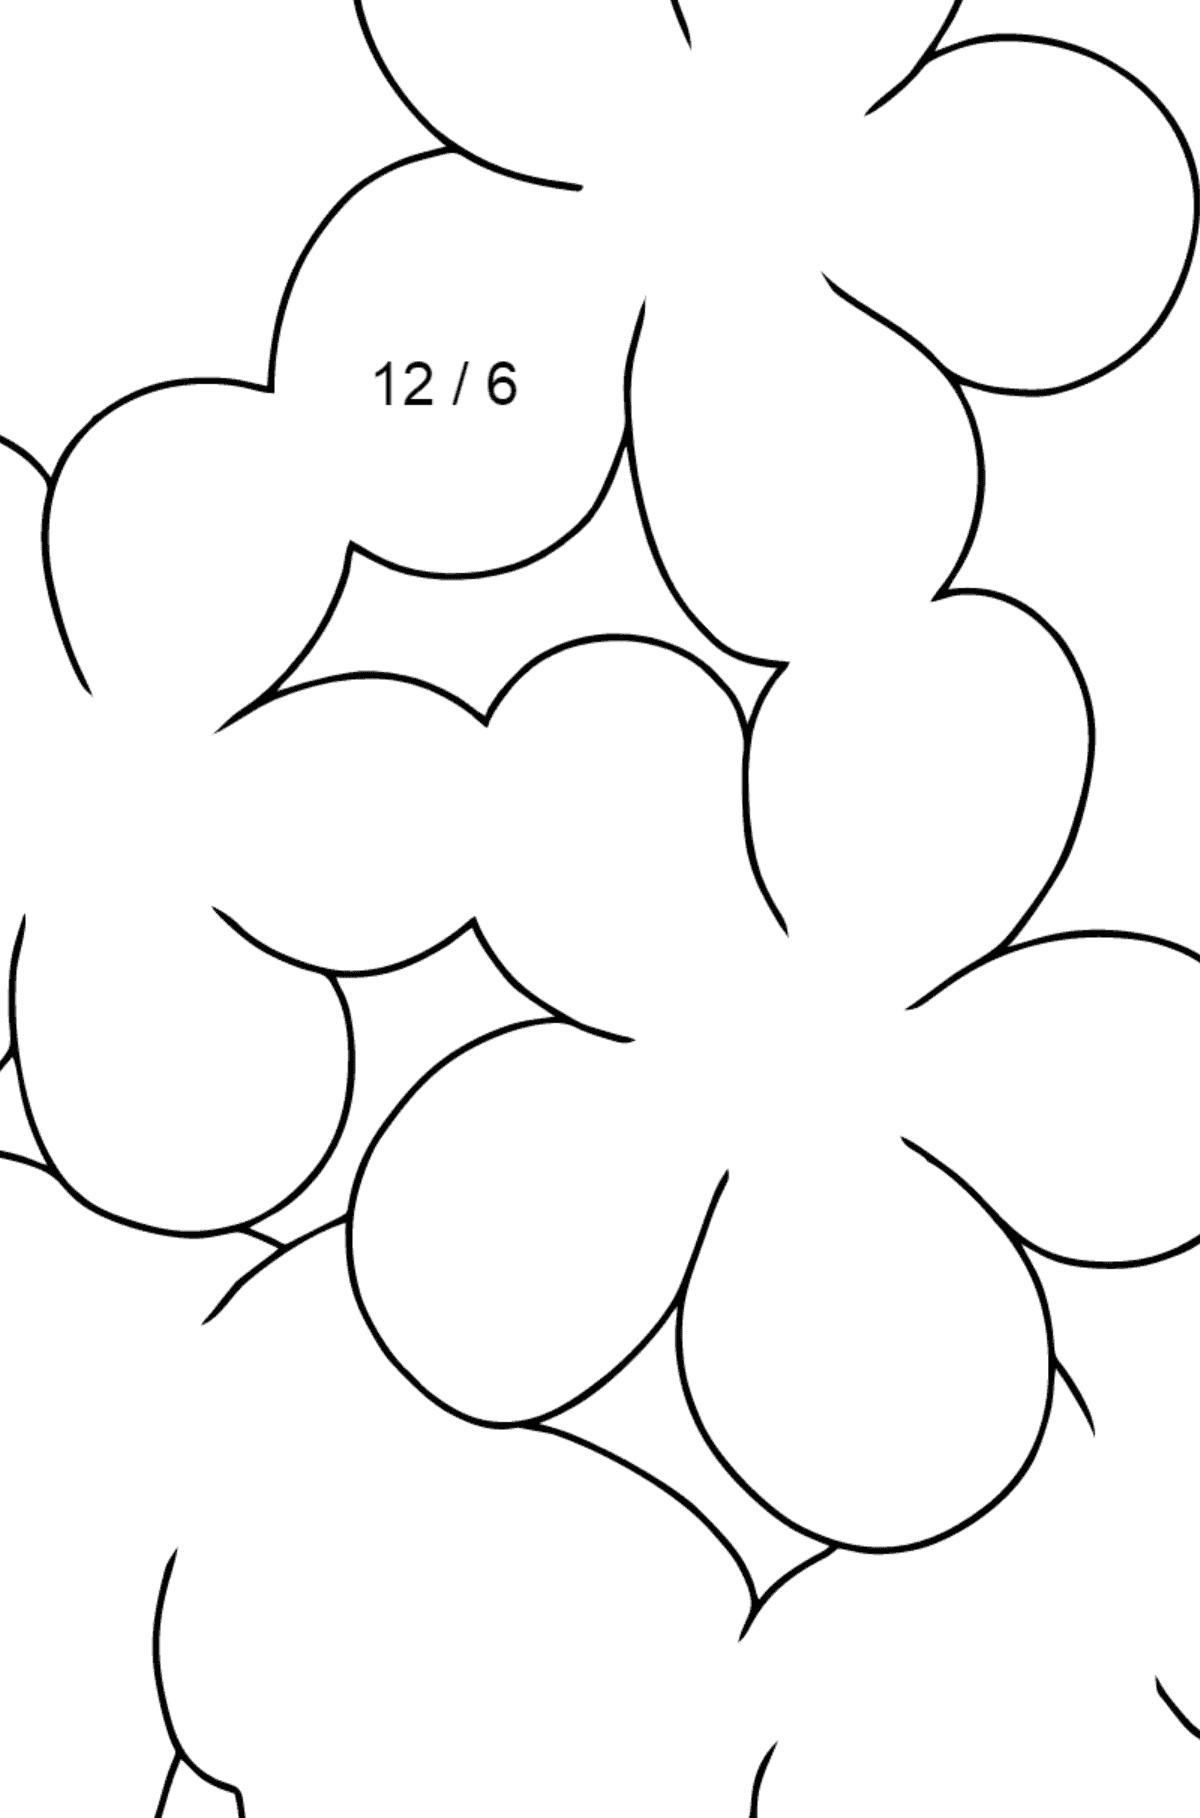 Coloring Page - Spring and First Flowers for Kids  - Color by Number Division